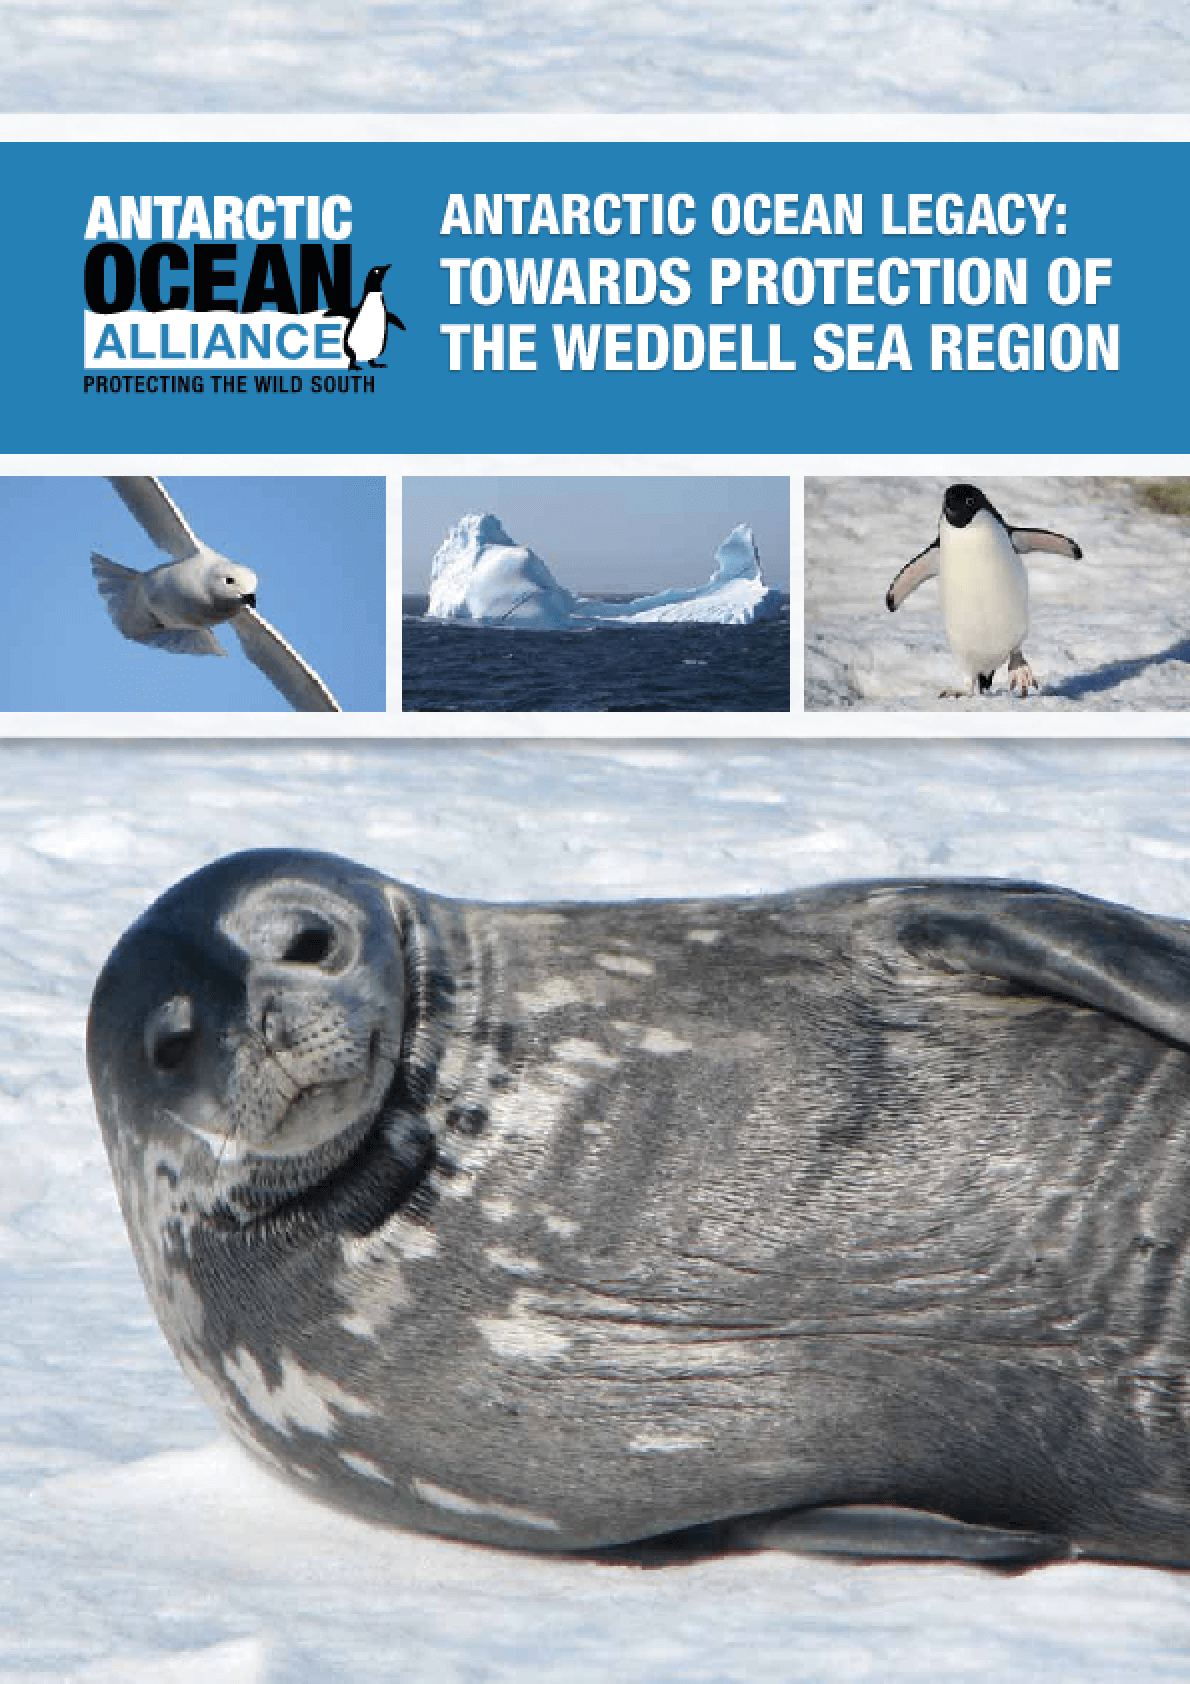 Antarctic Ocean Legacy: Towards Protection of the Weddell Sea Region